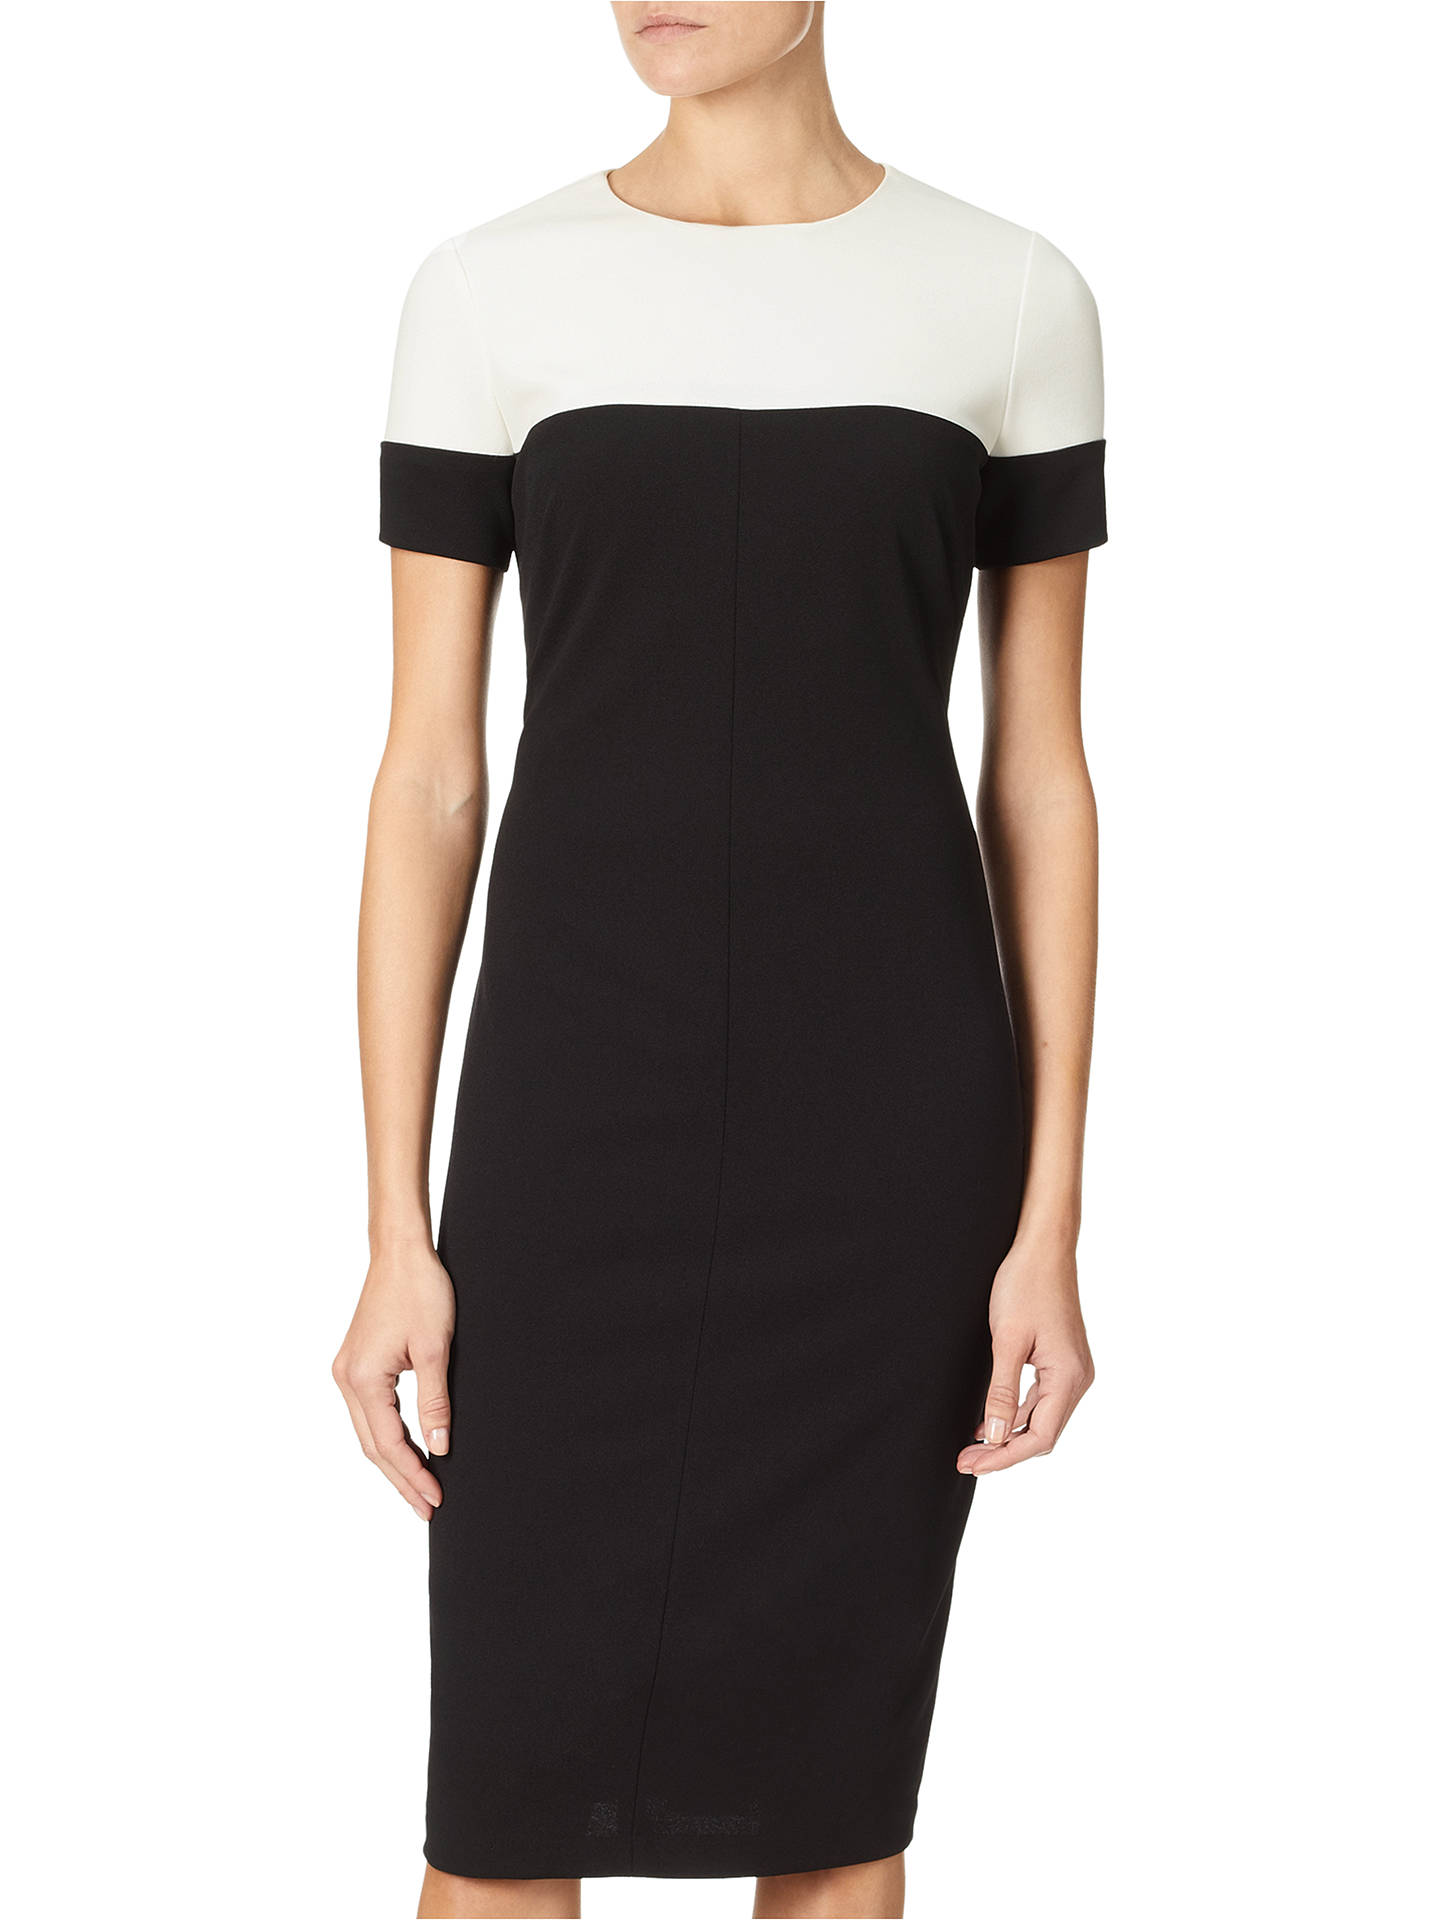 BuyAdrianna Papell Stretch Crepe Sheath Dress, Black/Ivory, 8 Online at johnlewis.com